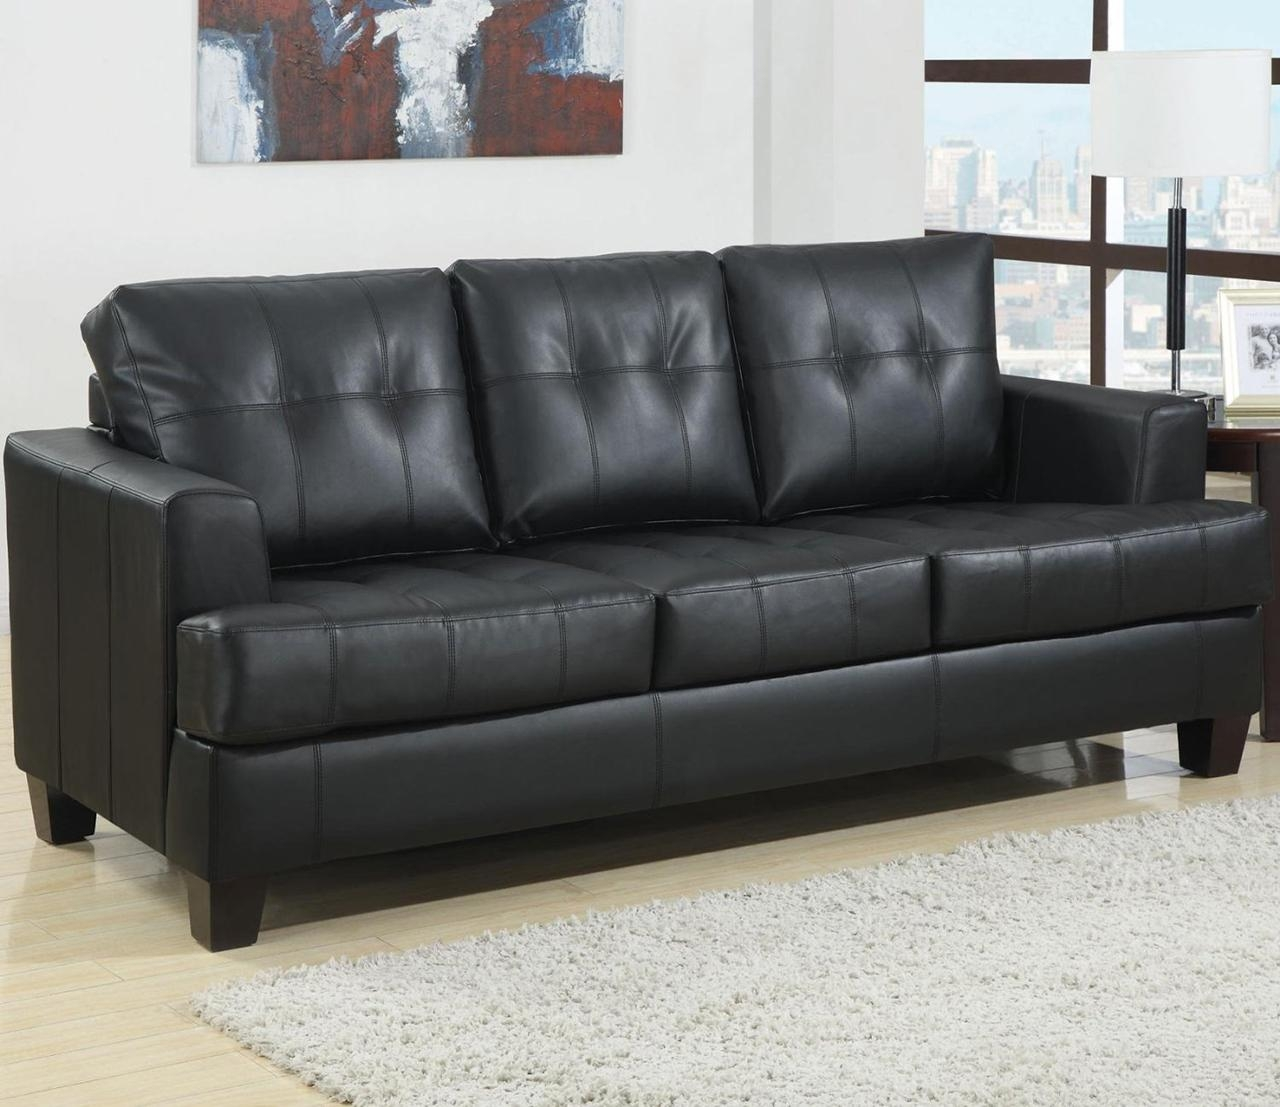 Black Leather Sleeper Sofa Queen – Ansugallery Intended For Black Leather Sectional Sleeper Sofas (Image 3 of 21)